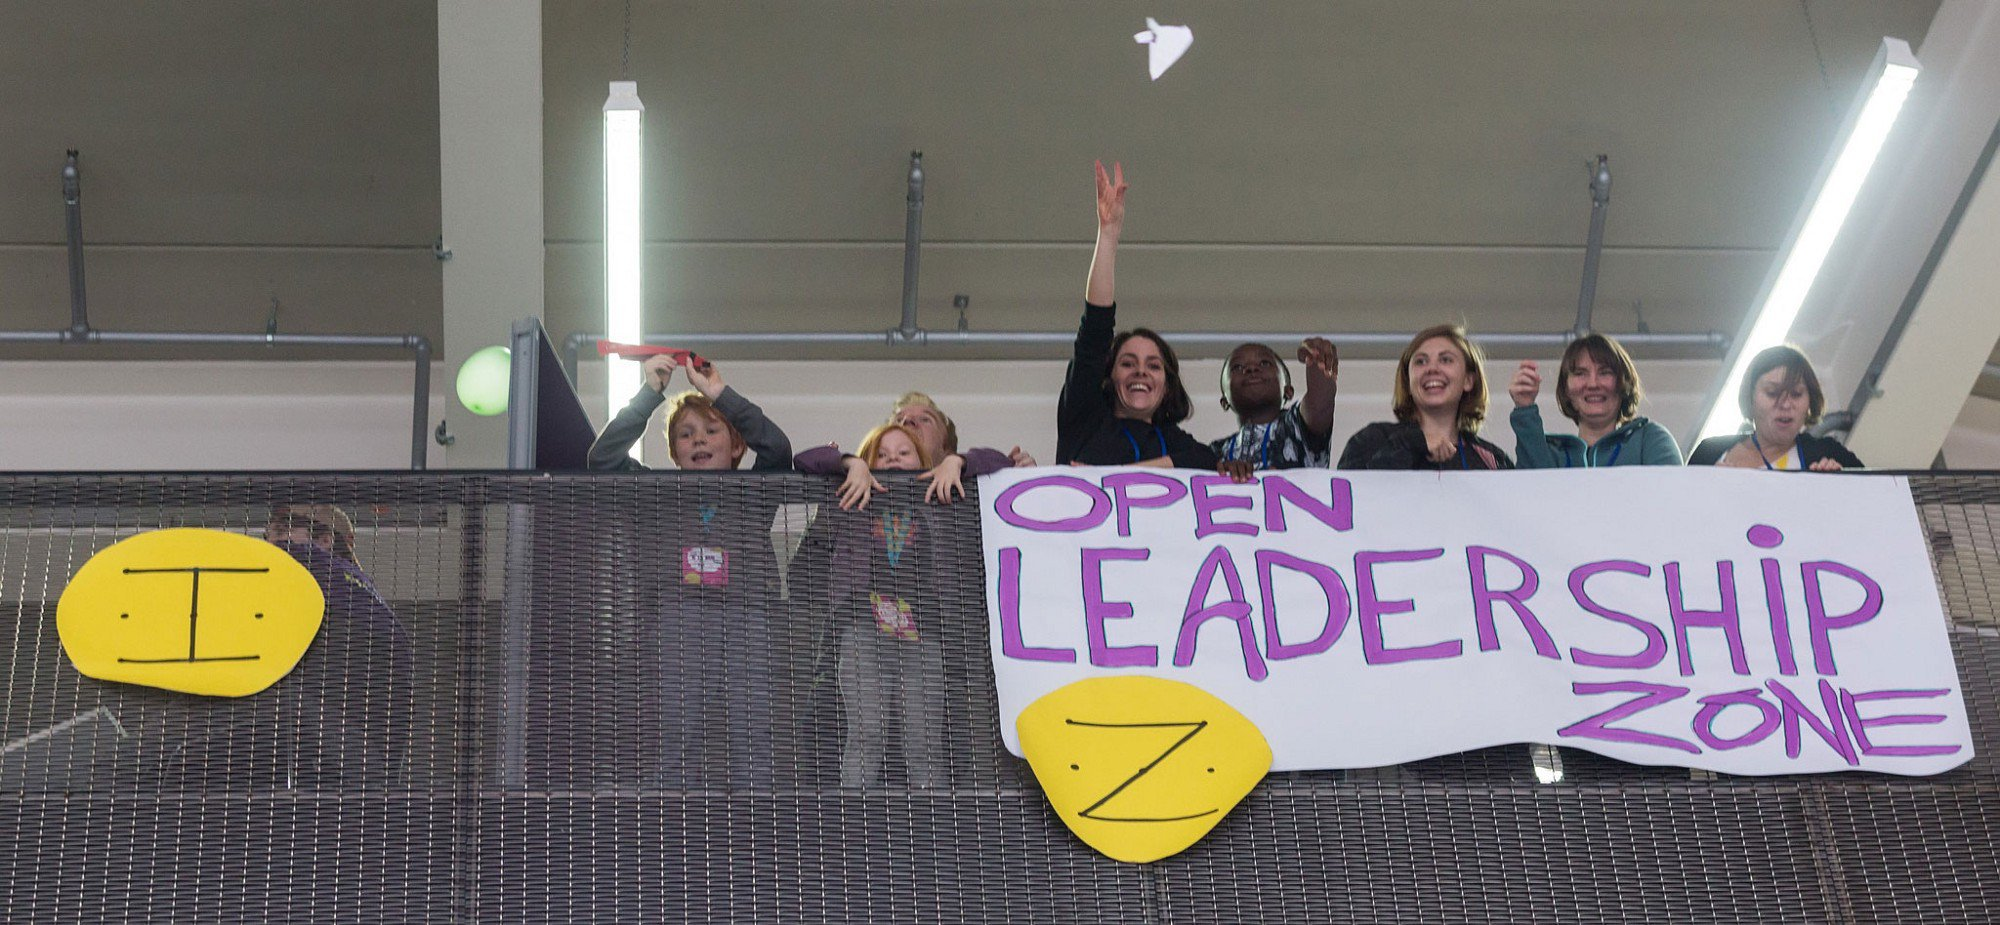 open leadership zone